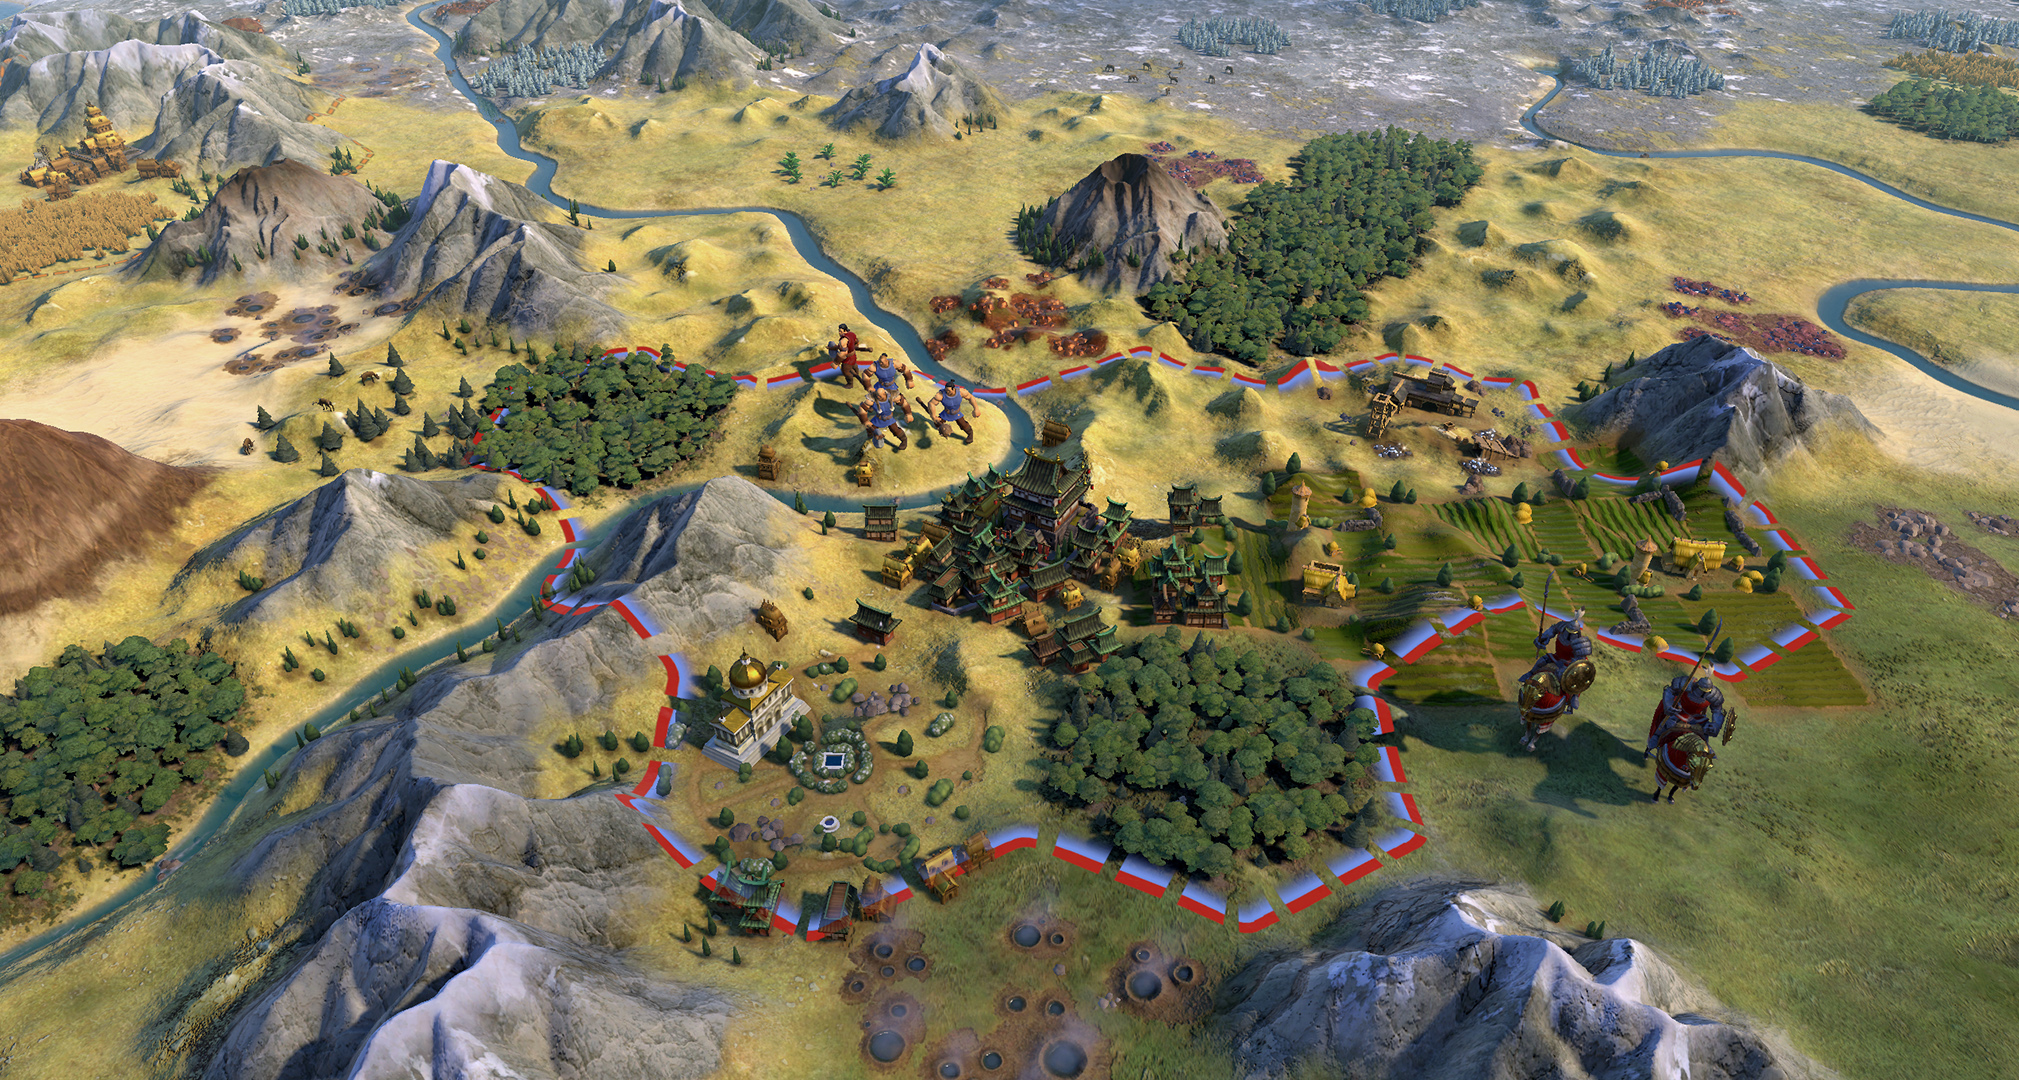 Civilization 6 art director releases a mod that makes it look like